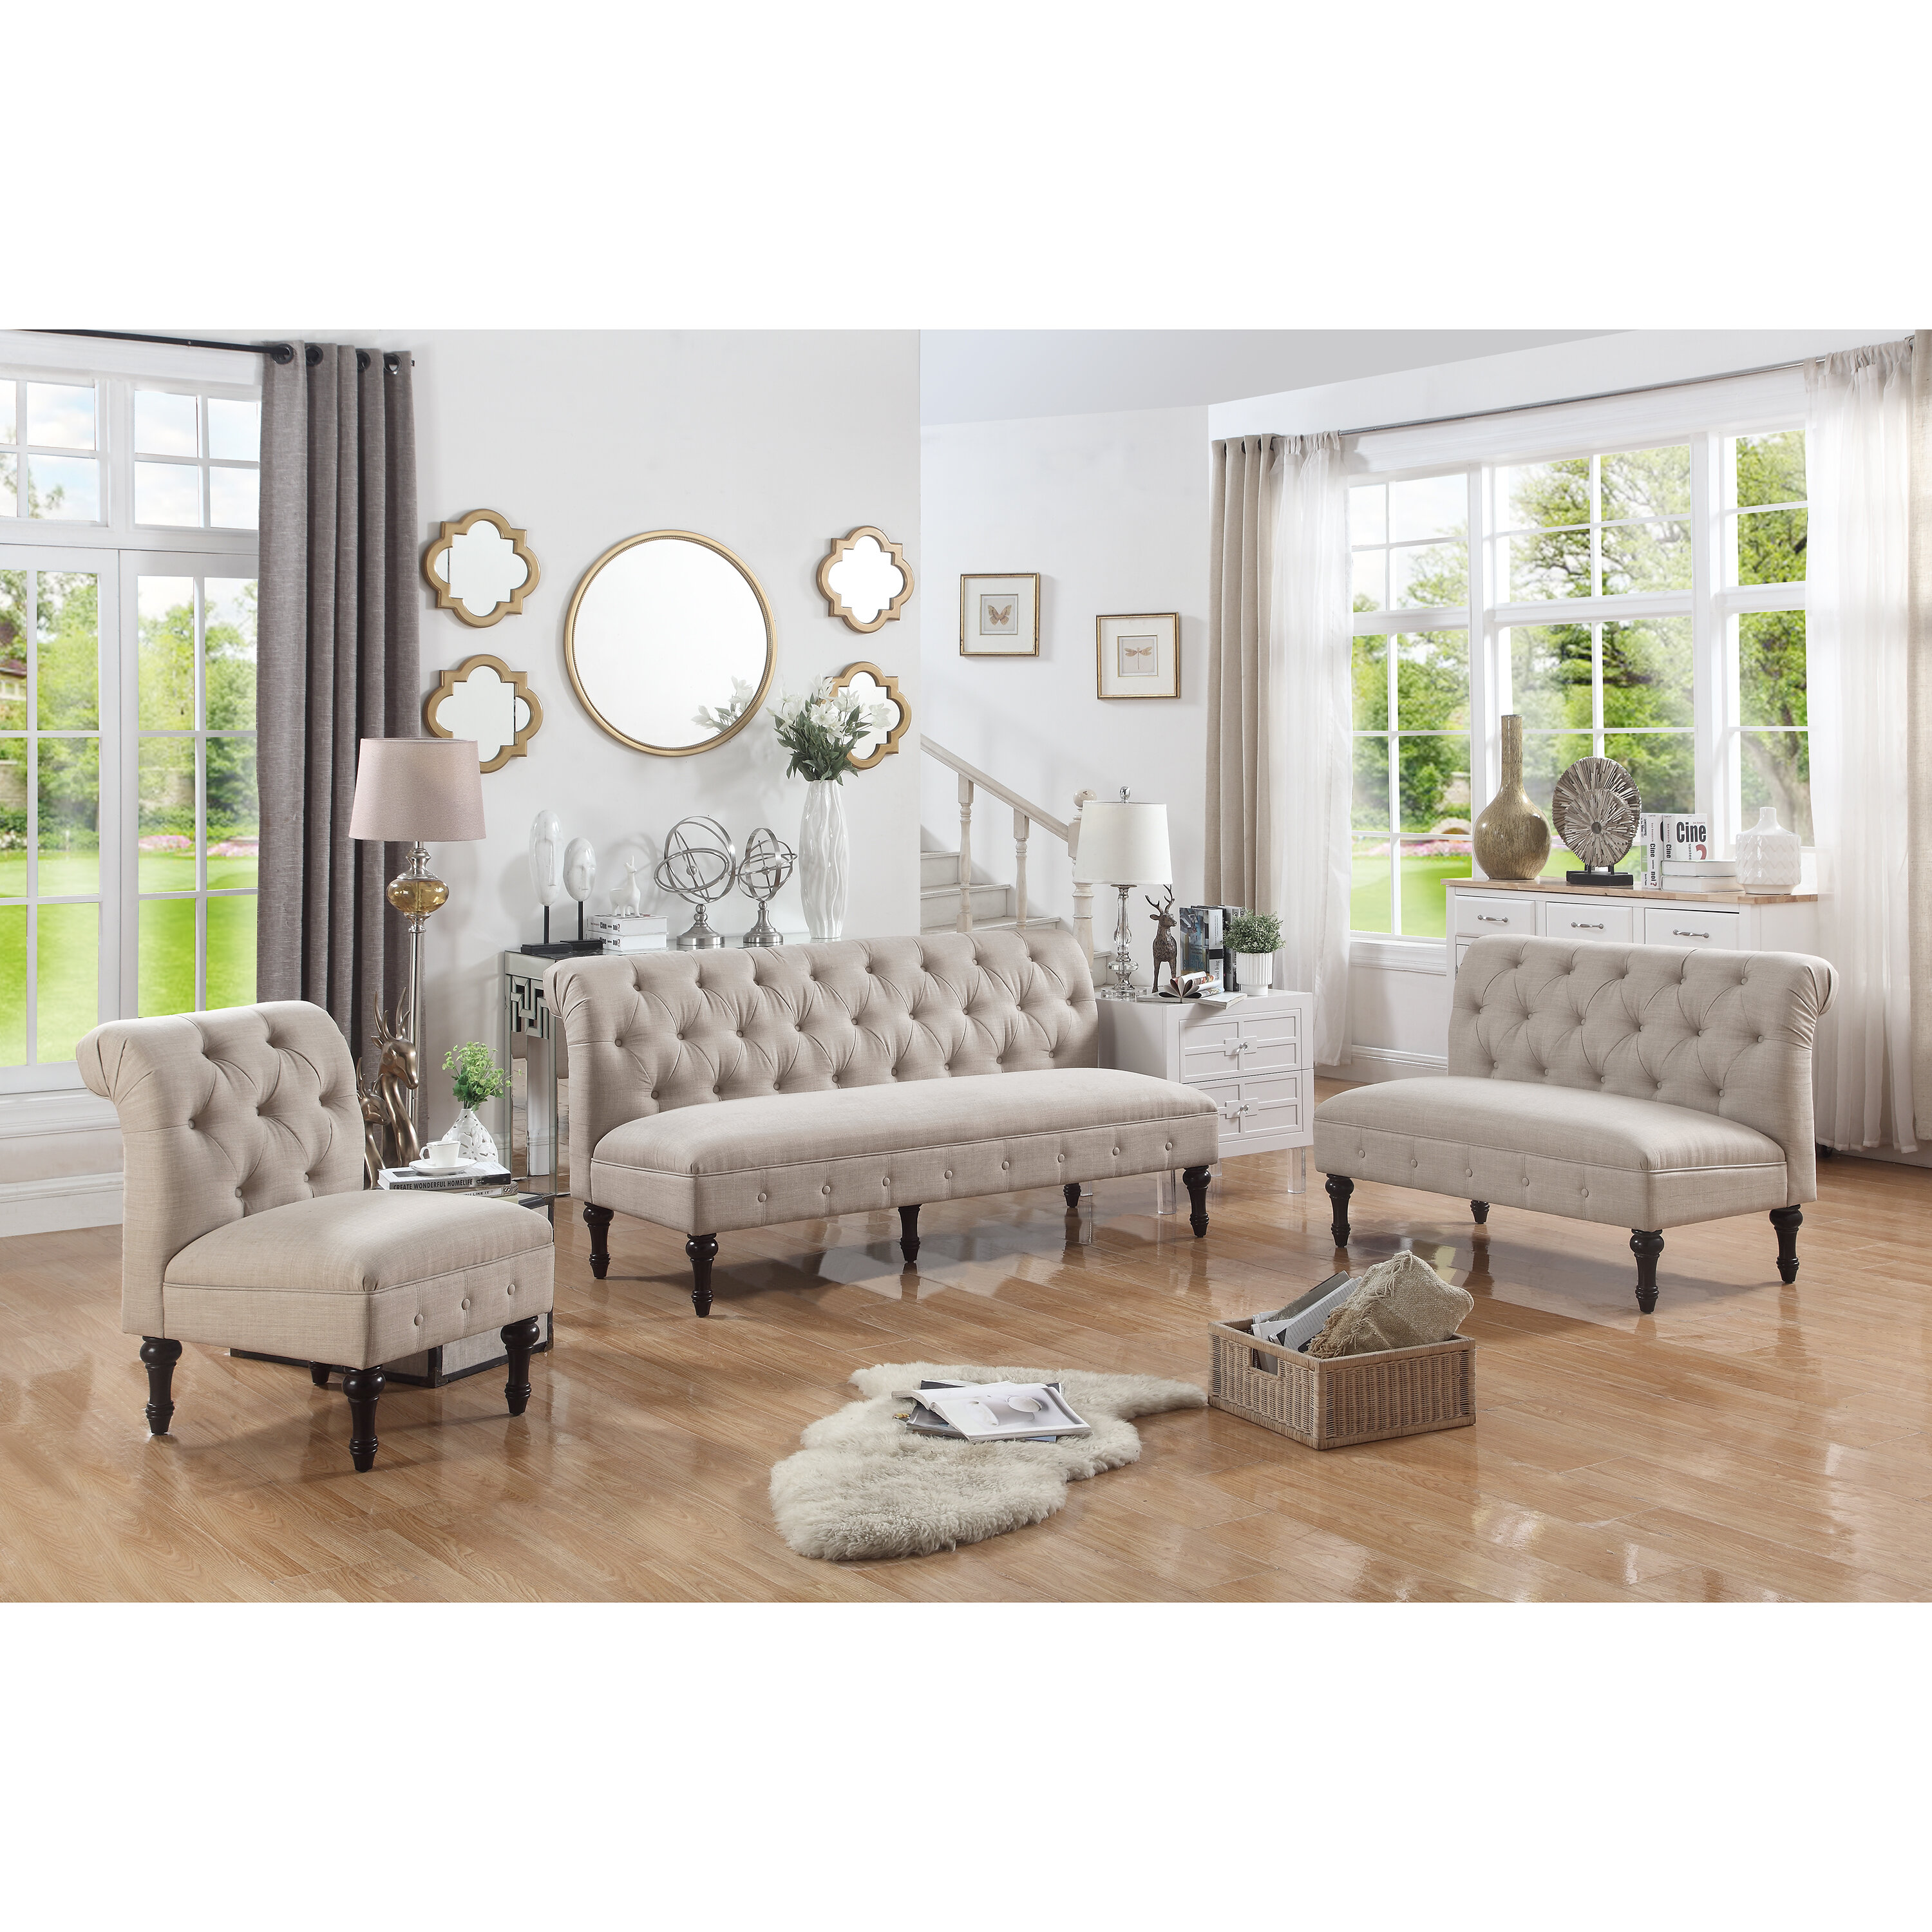 Ophelia & Co. Lauryn Living Room Collection & Reviews | Wayfair